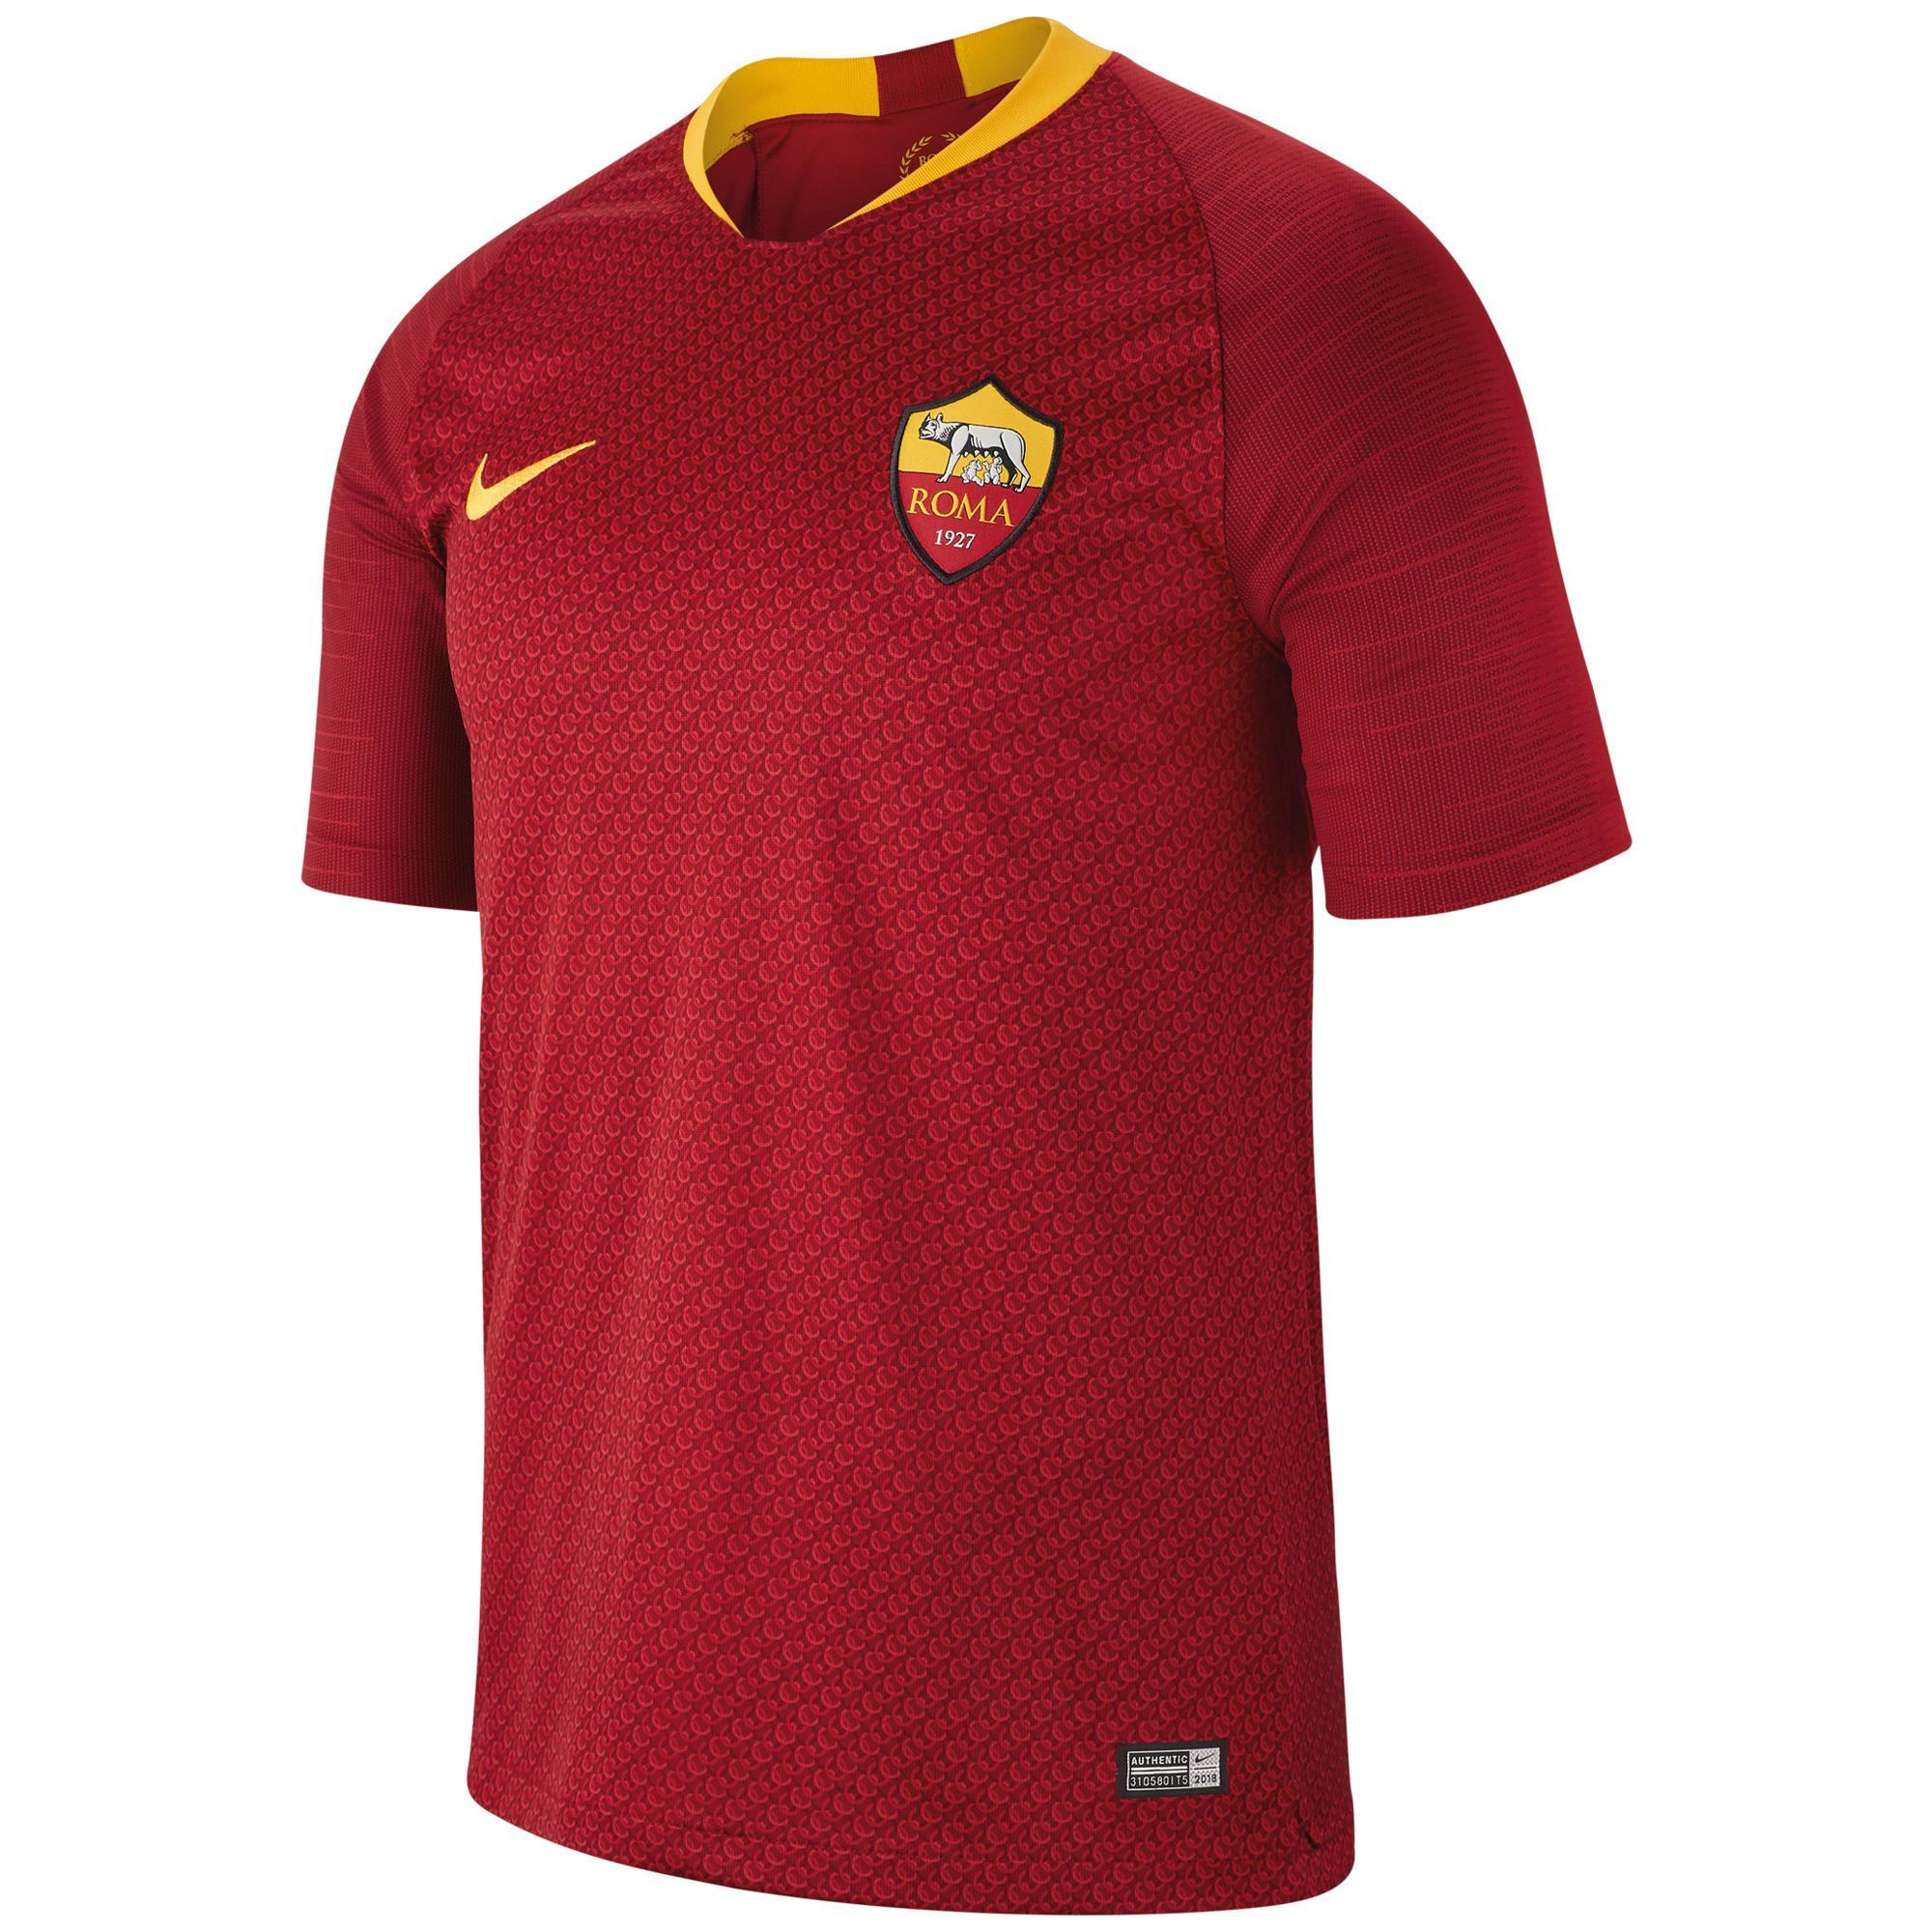 Nike Voetbalshirt AS Roma thuisshirt 18/19 voor kinderen rood